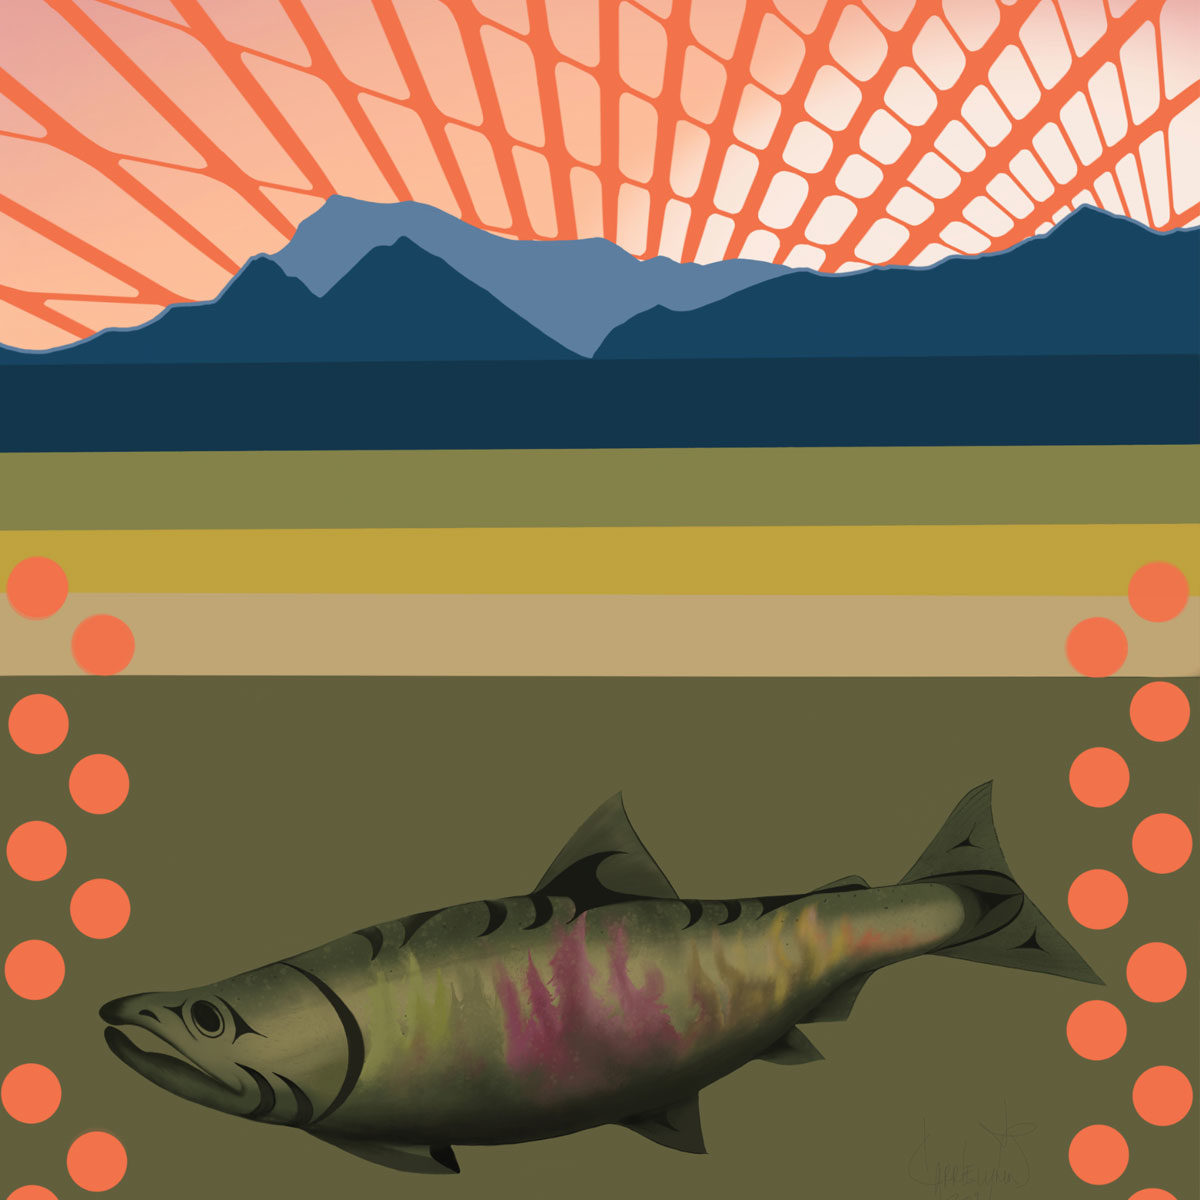 Salmon art with a forest on the side of the salmon and orange polka dots around it.